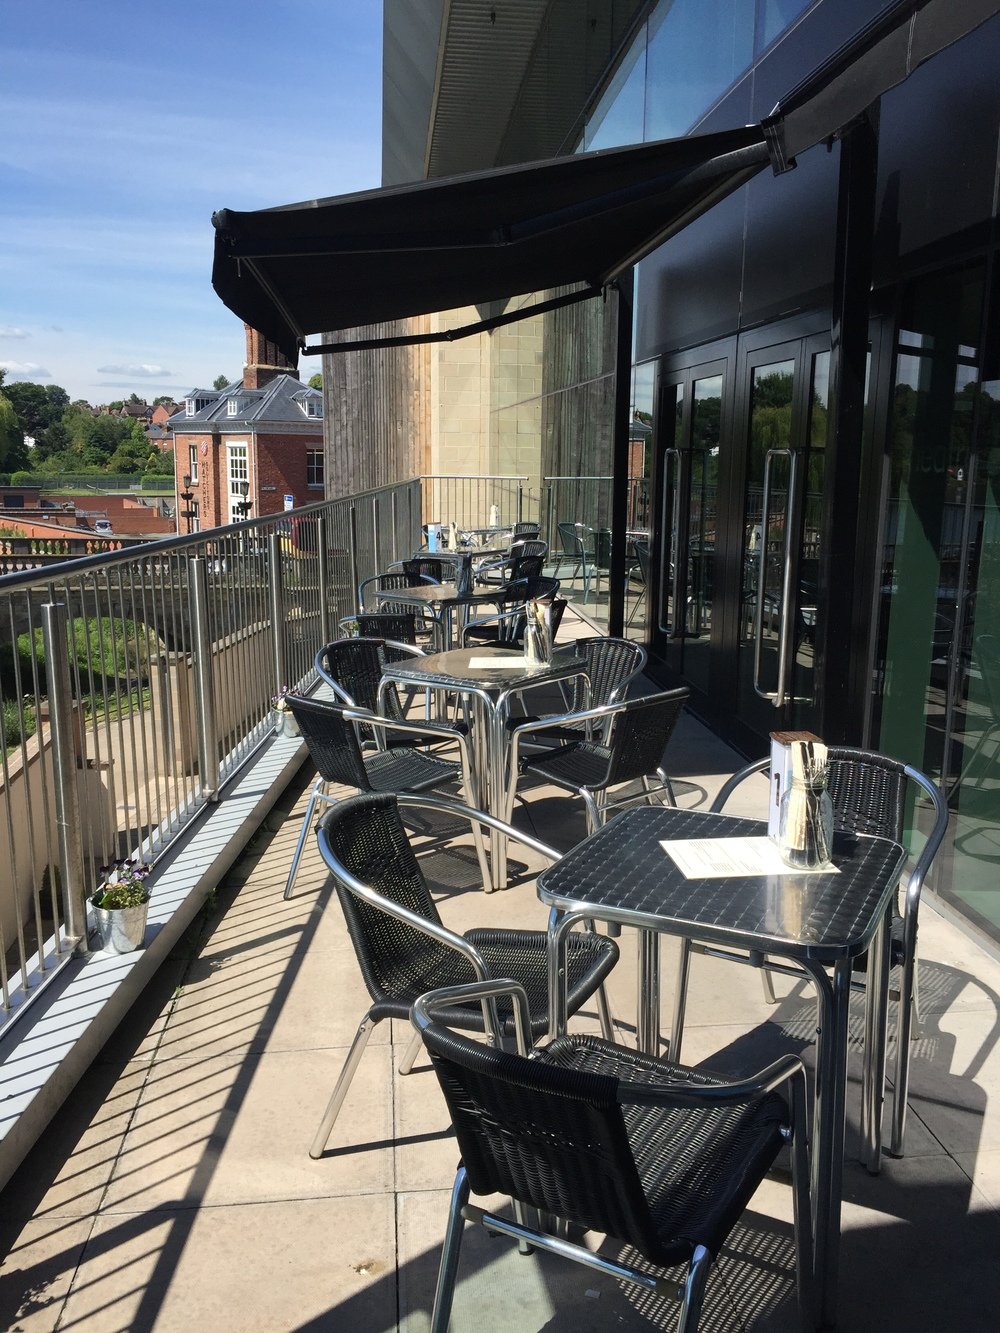 Enjoy the panoramic views over the River Severn sat out on the balcony